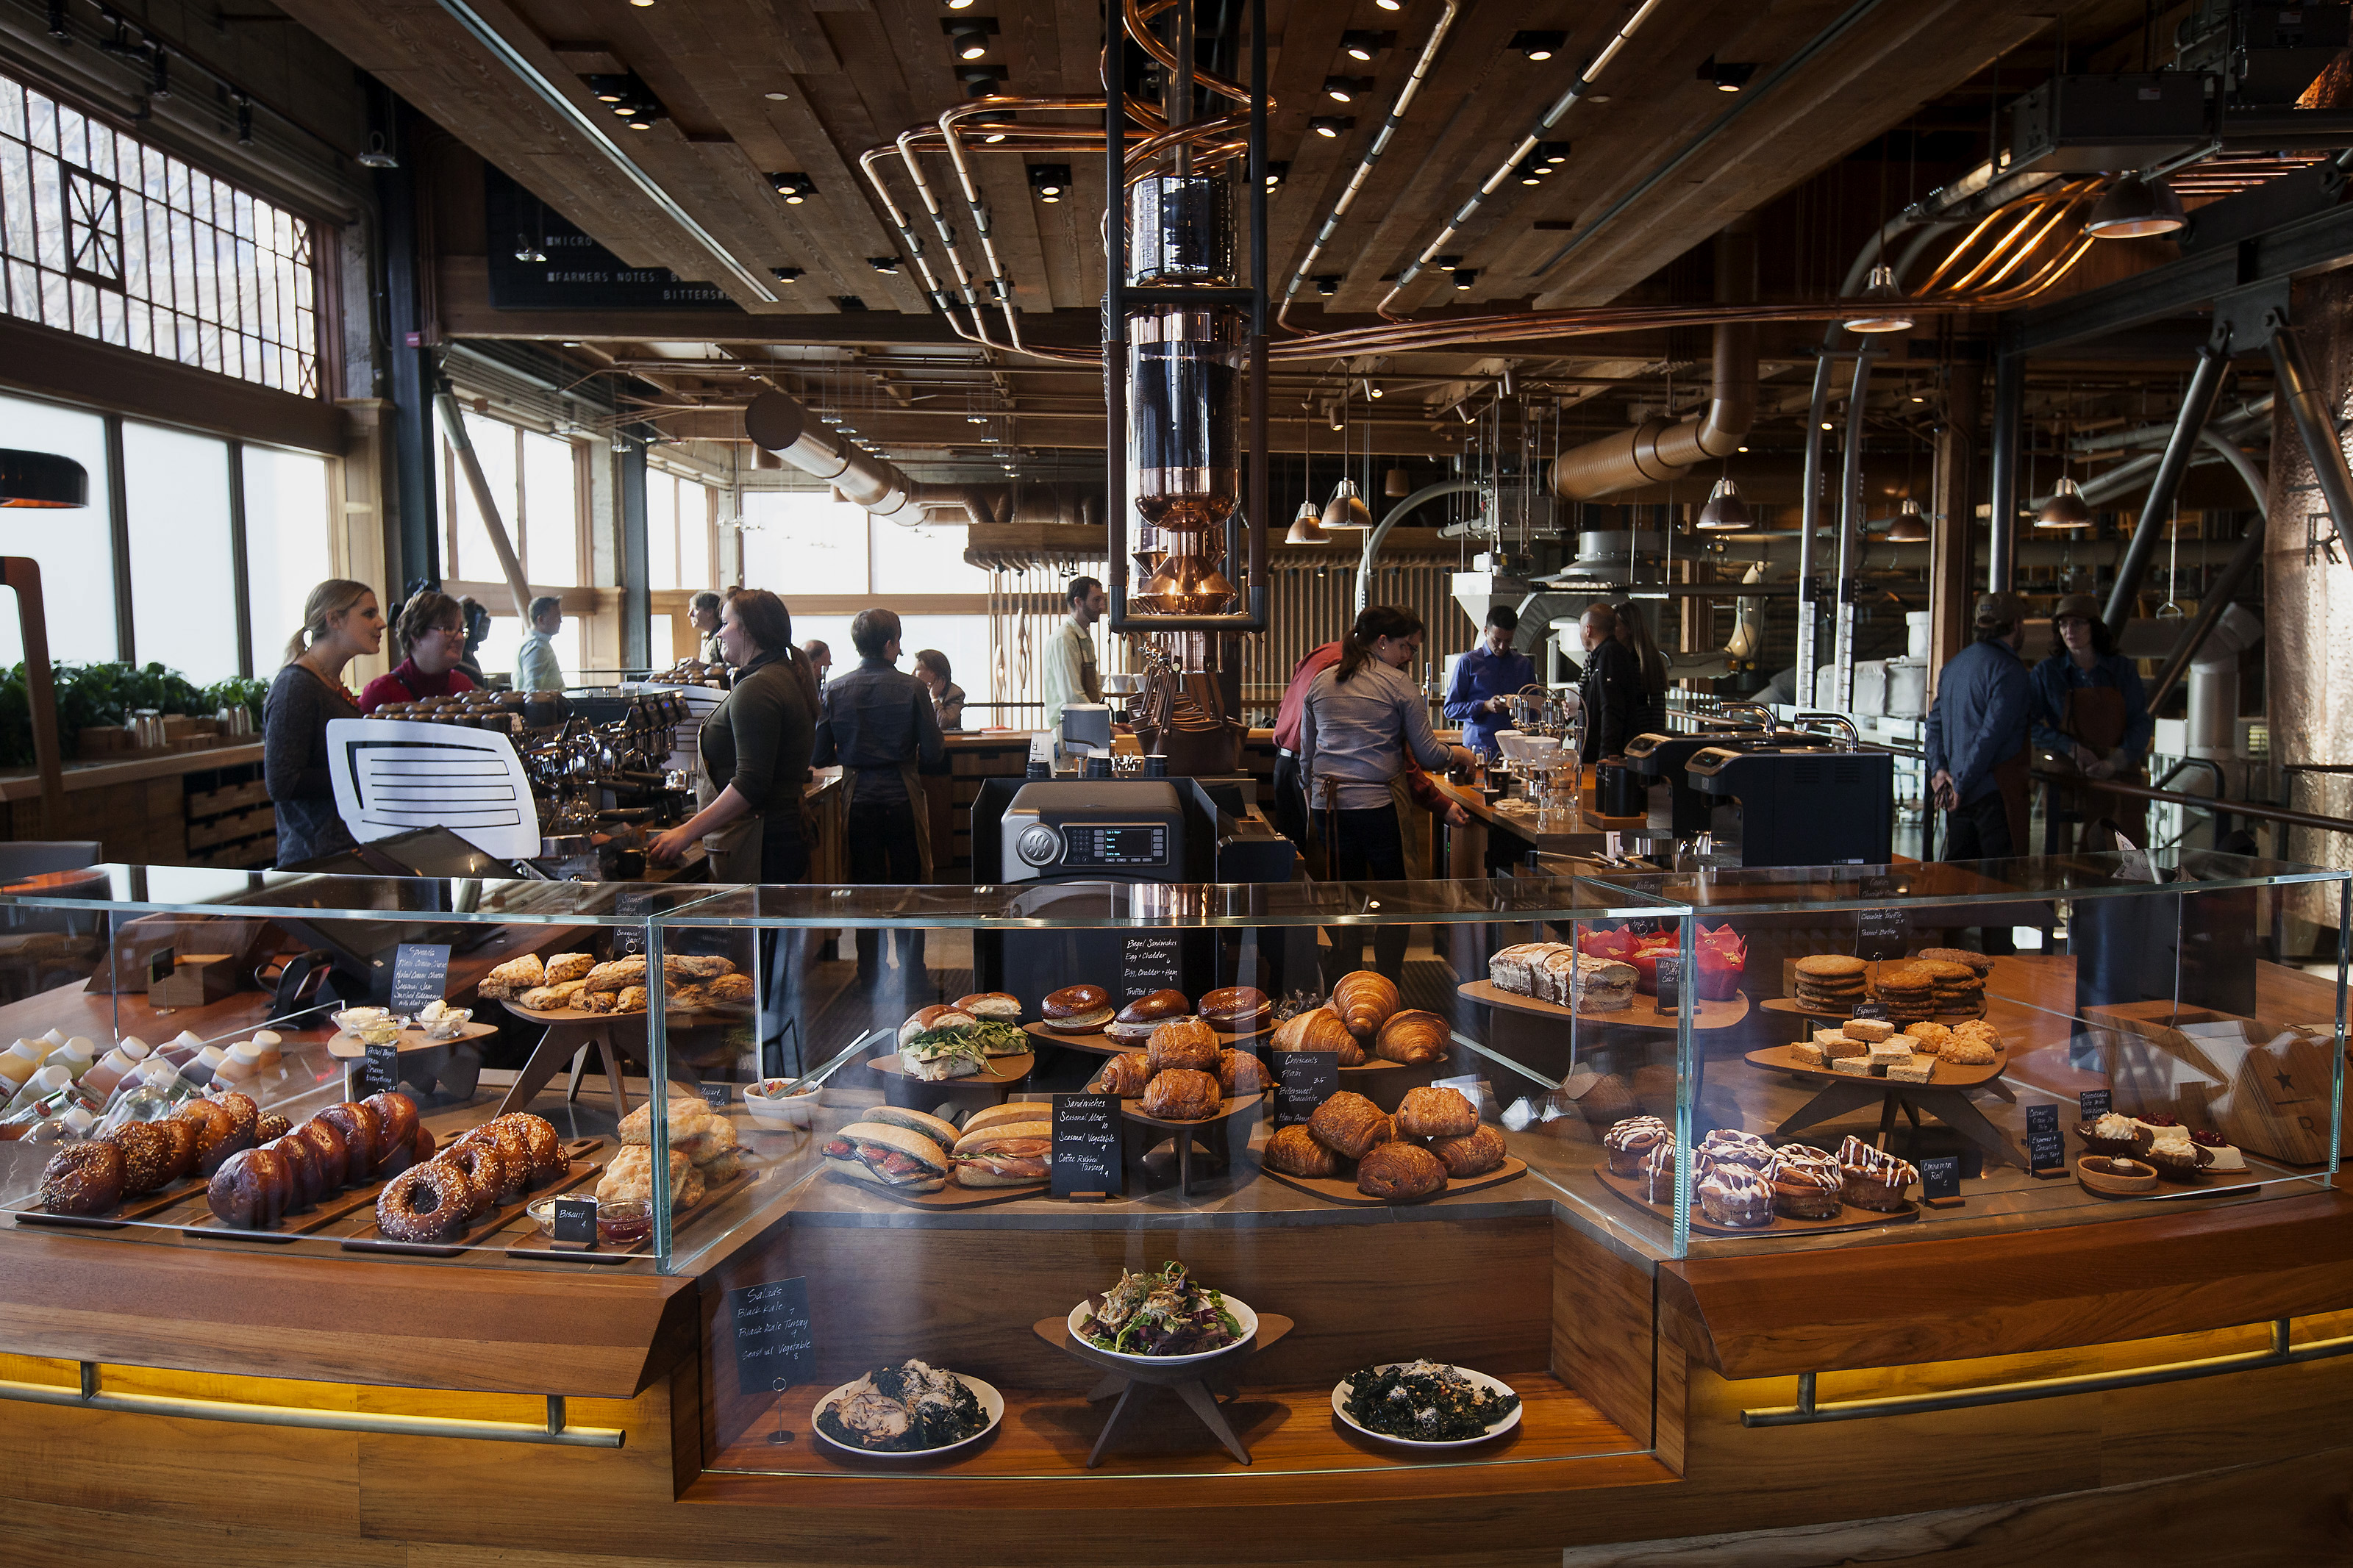 Food sits on display at the Starbucks Corp. Reserve Roastery and Tasting Room in Seattle, Washington, U.S., on Dec. 3, 2014.